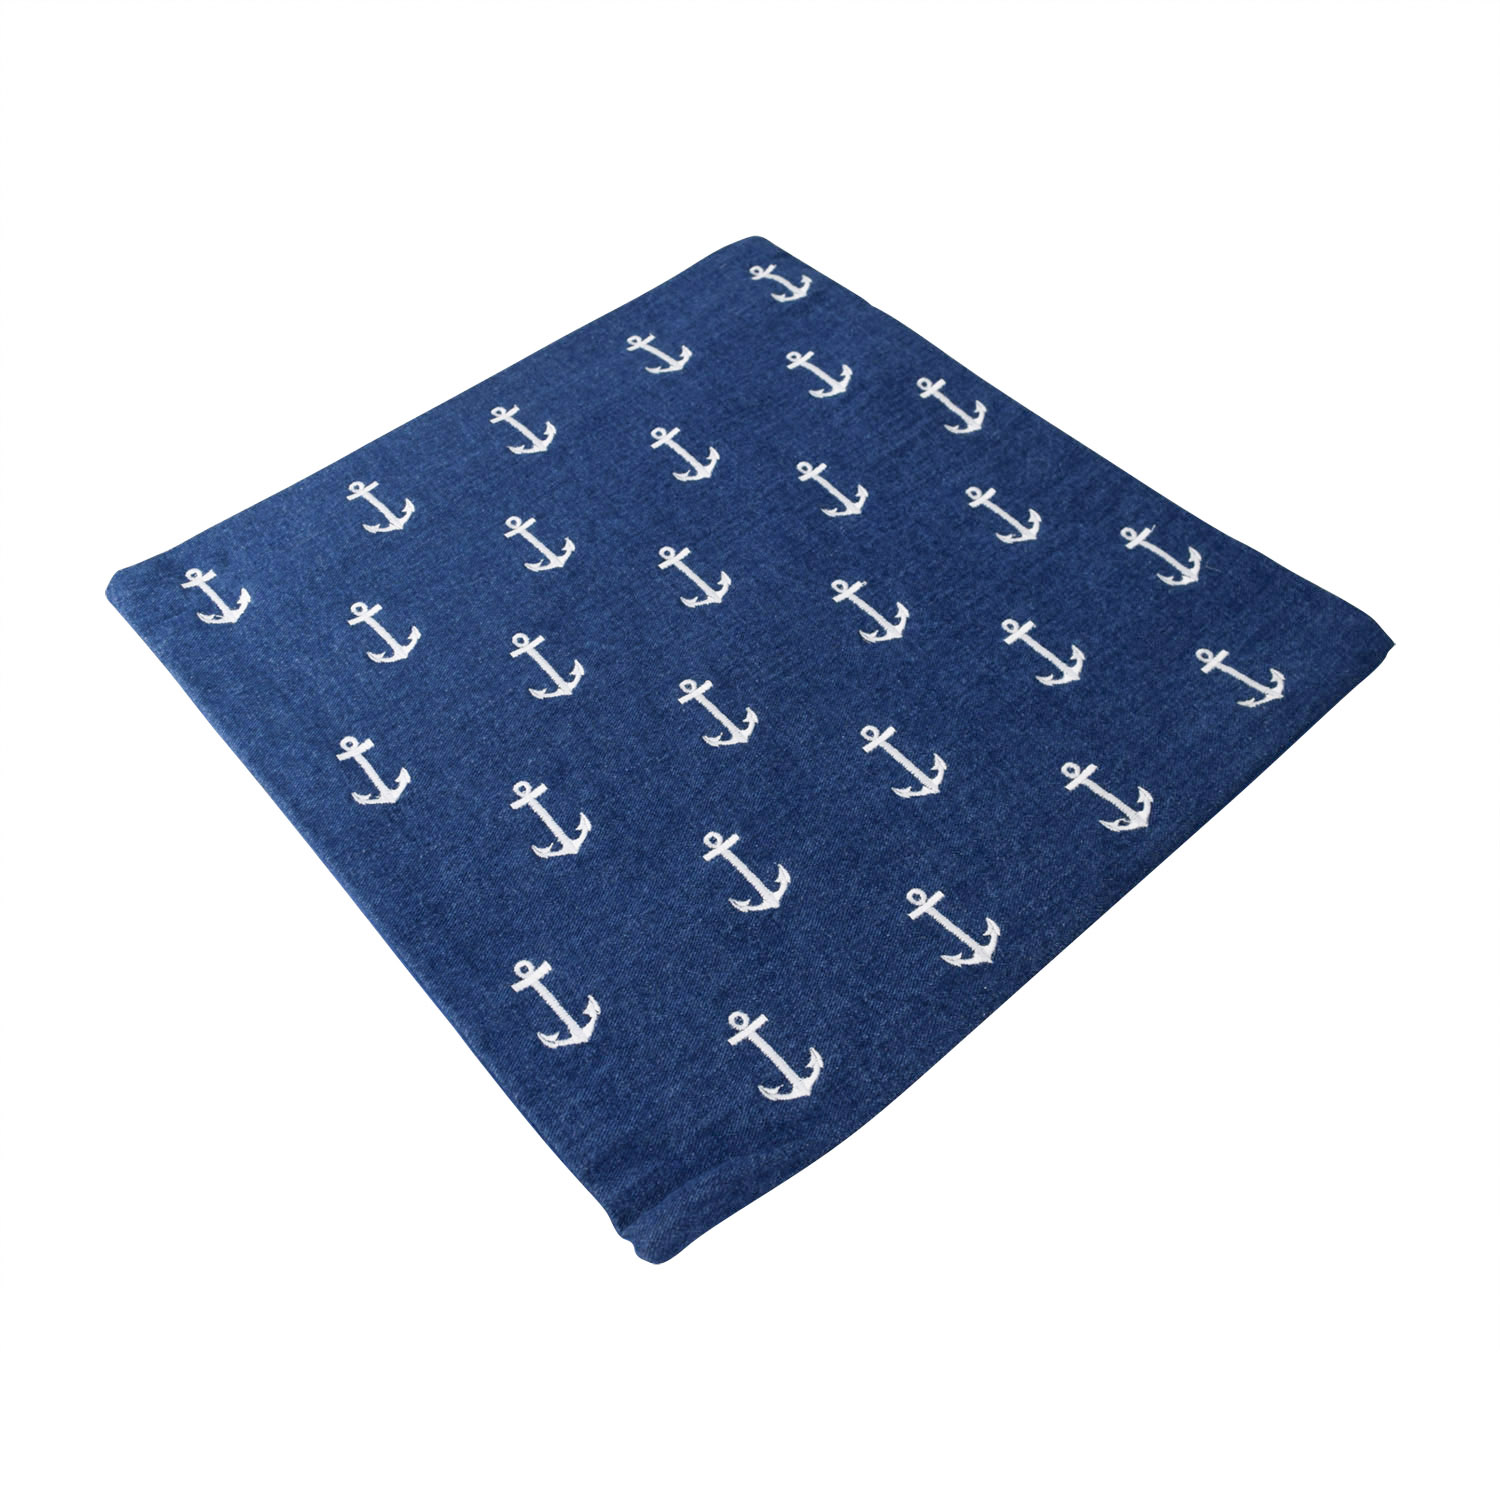 Obeetee Obeetee Anchor Cushion Cover for sale